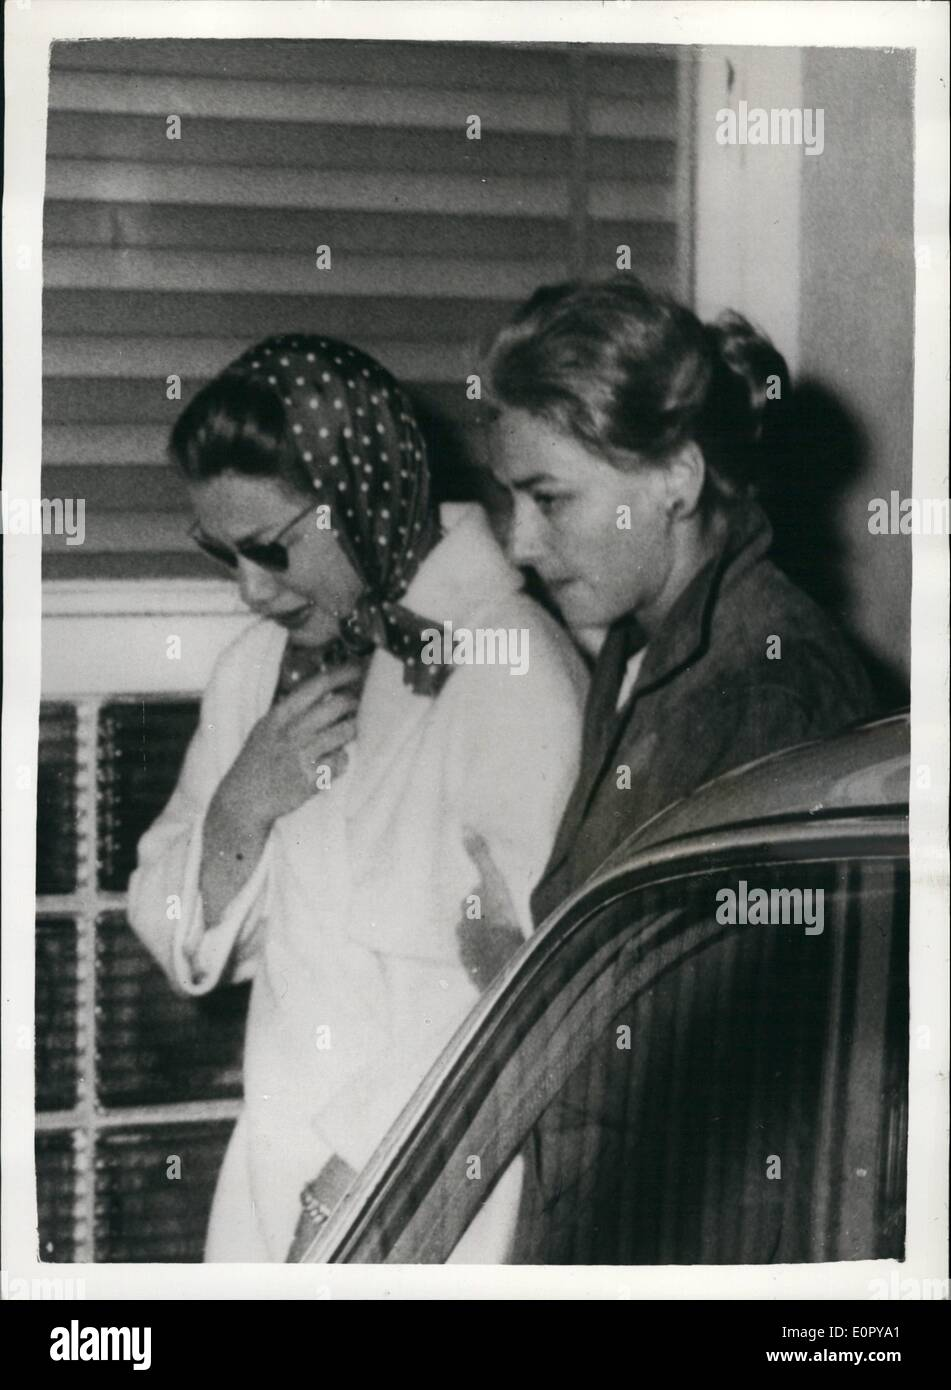 May 05, 1957 - Dram,a of the Mille Migila...Actress Linda Christian Weeps After Millionaire Finance Had Been Killed: Screen Star Linda Christian (left) weeps as she walks with a friends at the Milan-Linate airport after learning that her Wealthy friend - the Marquia Alfonso de Portago had been killed when his car crashed into the crowd near Brescia - after tyre had burst.Linda said that she and the Maerquis had intended to marry - as soon as he had obtained a divorce from his present wife. Twelve Others lost their lives as result of the Crash - Stock Image